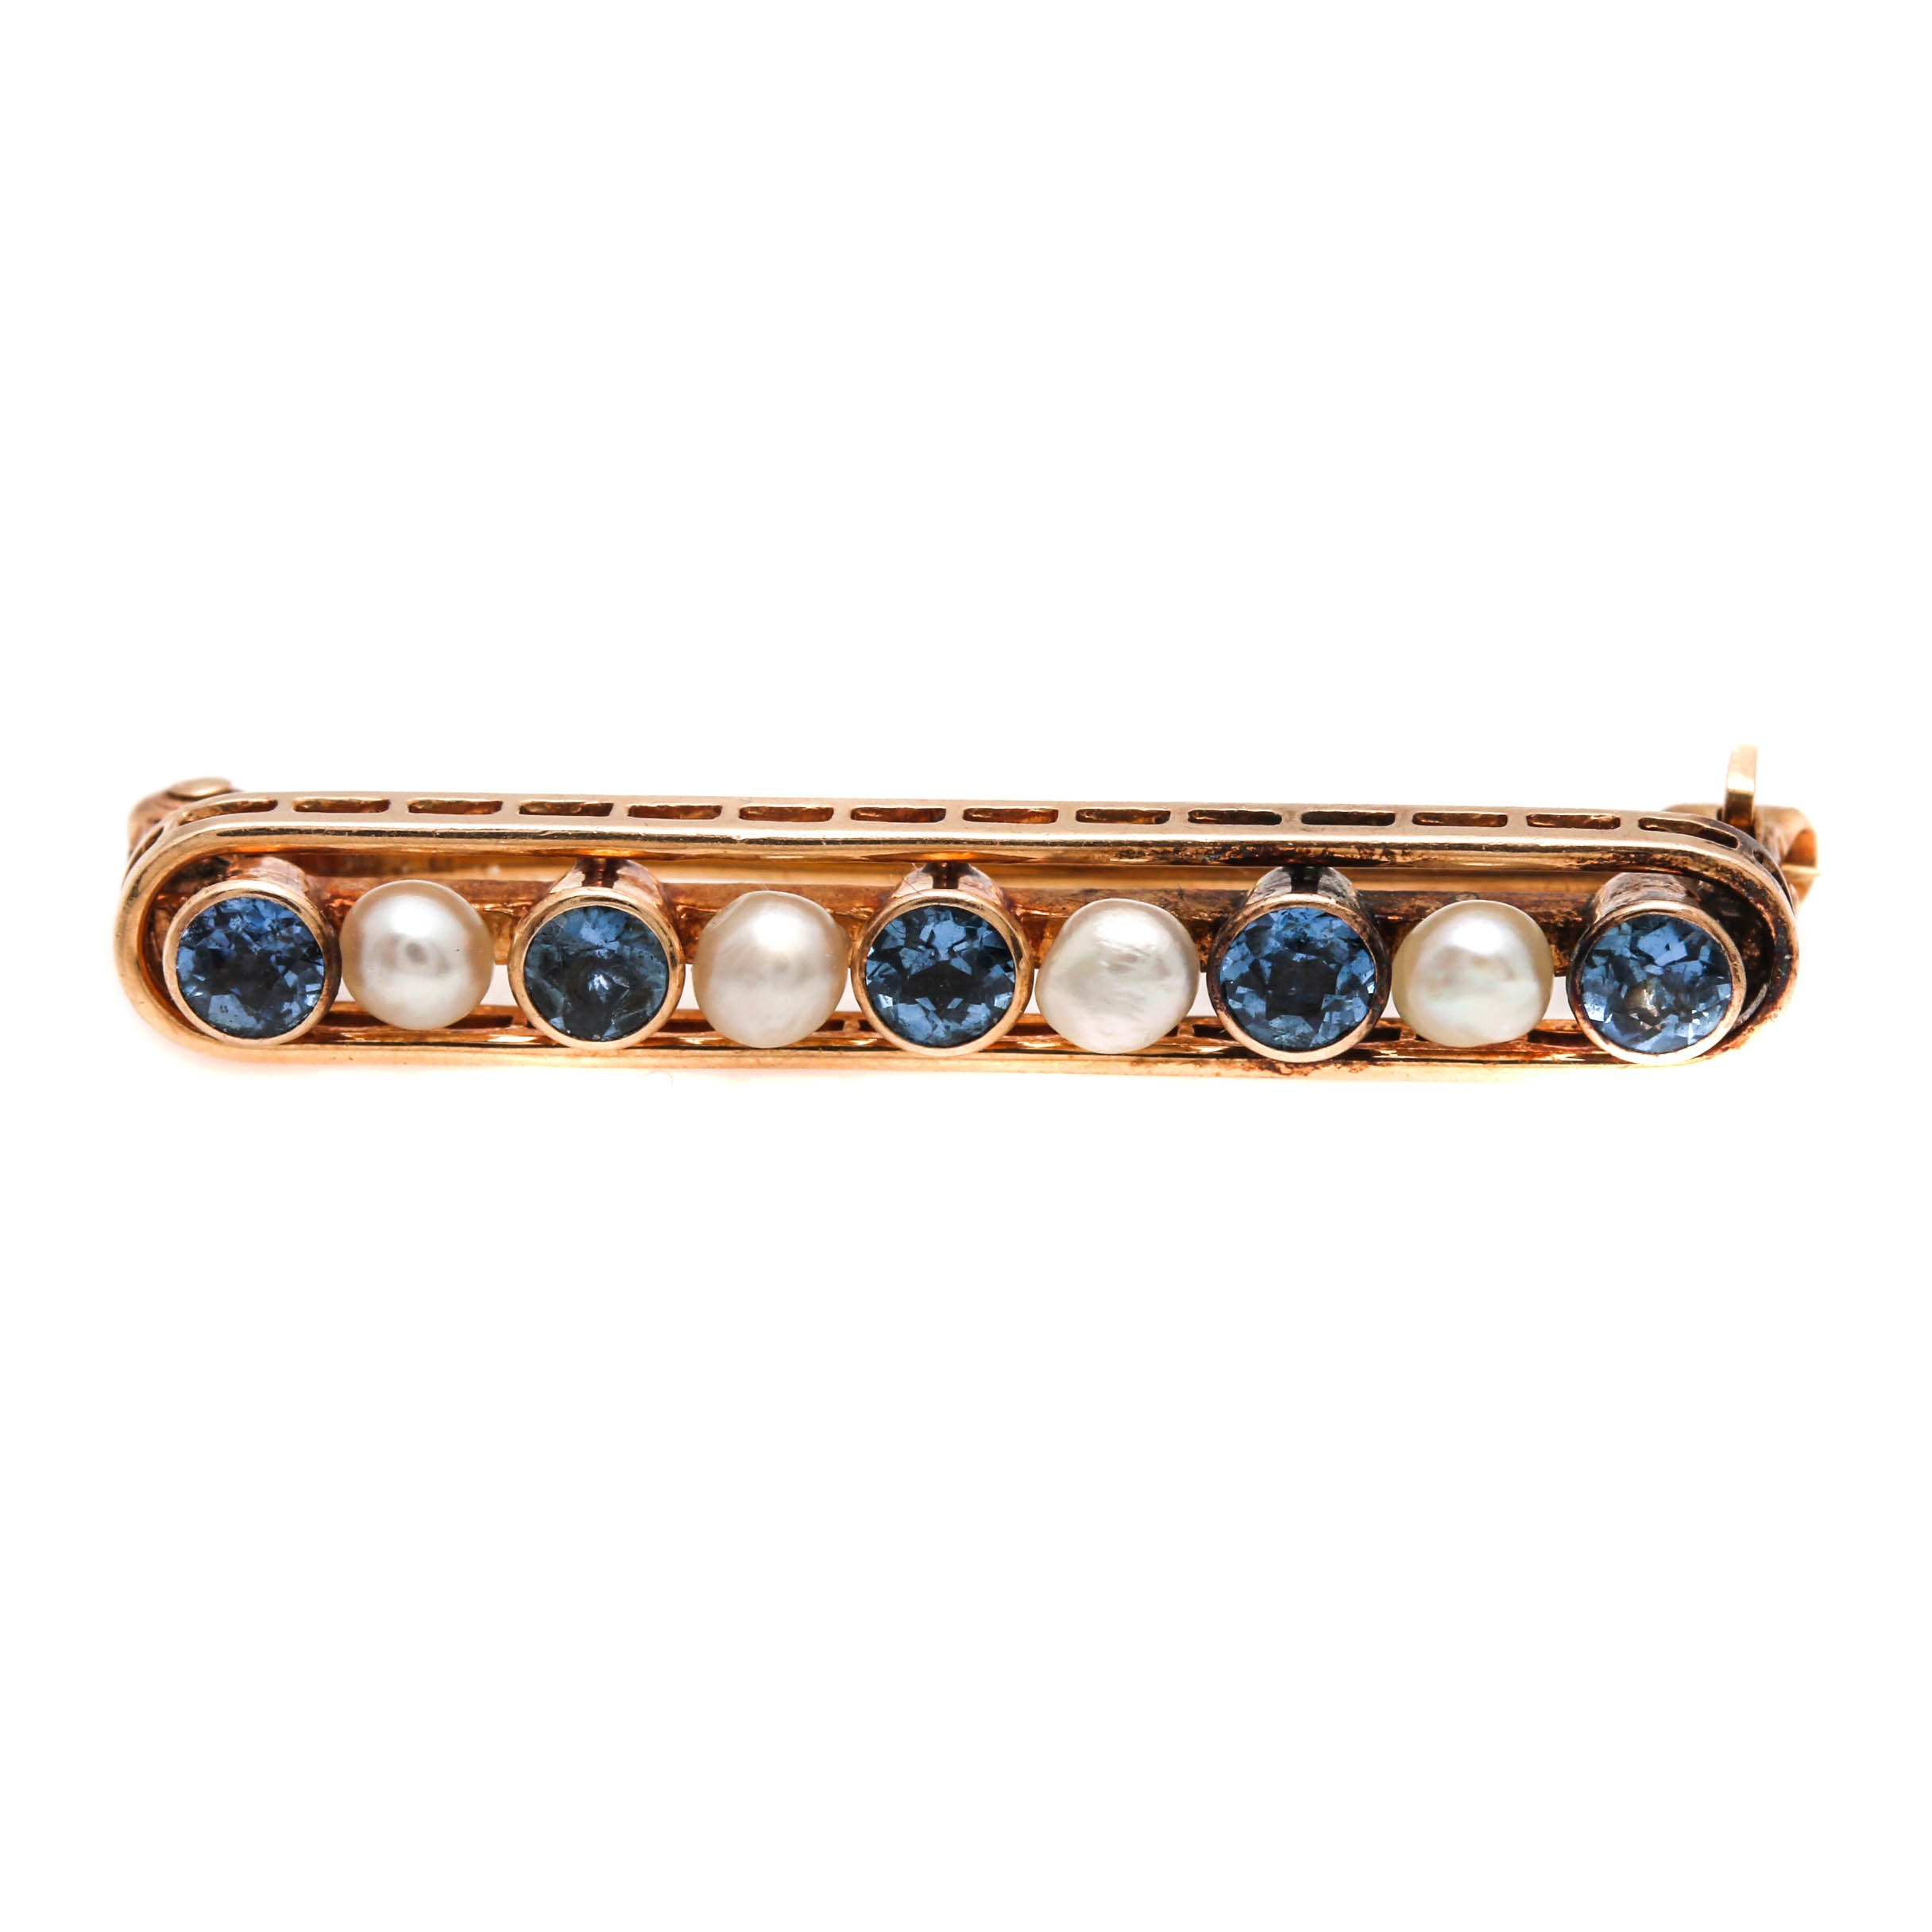 Vintage 14K Yellow Gold Sapphire and Seed Pearl Bar Brooch